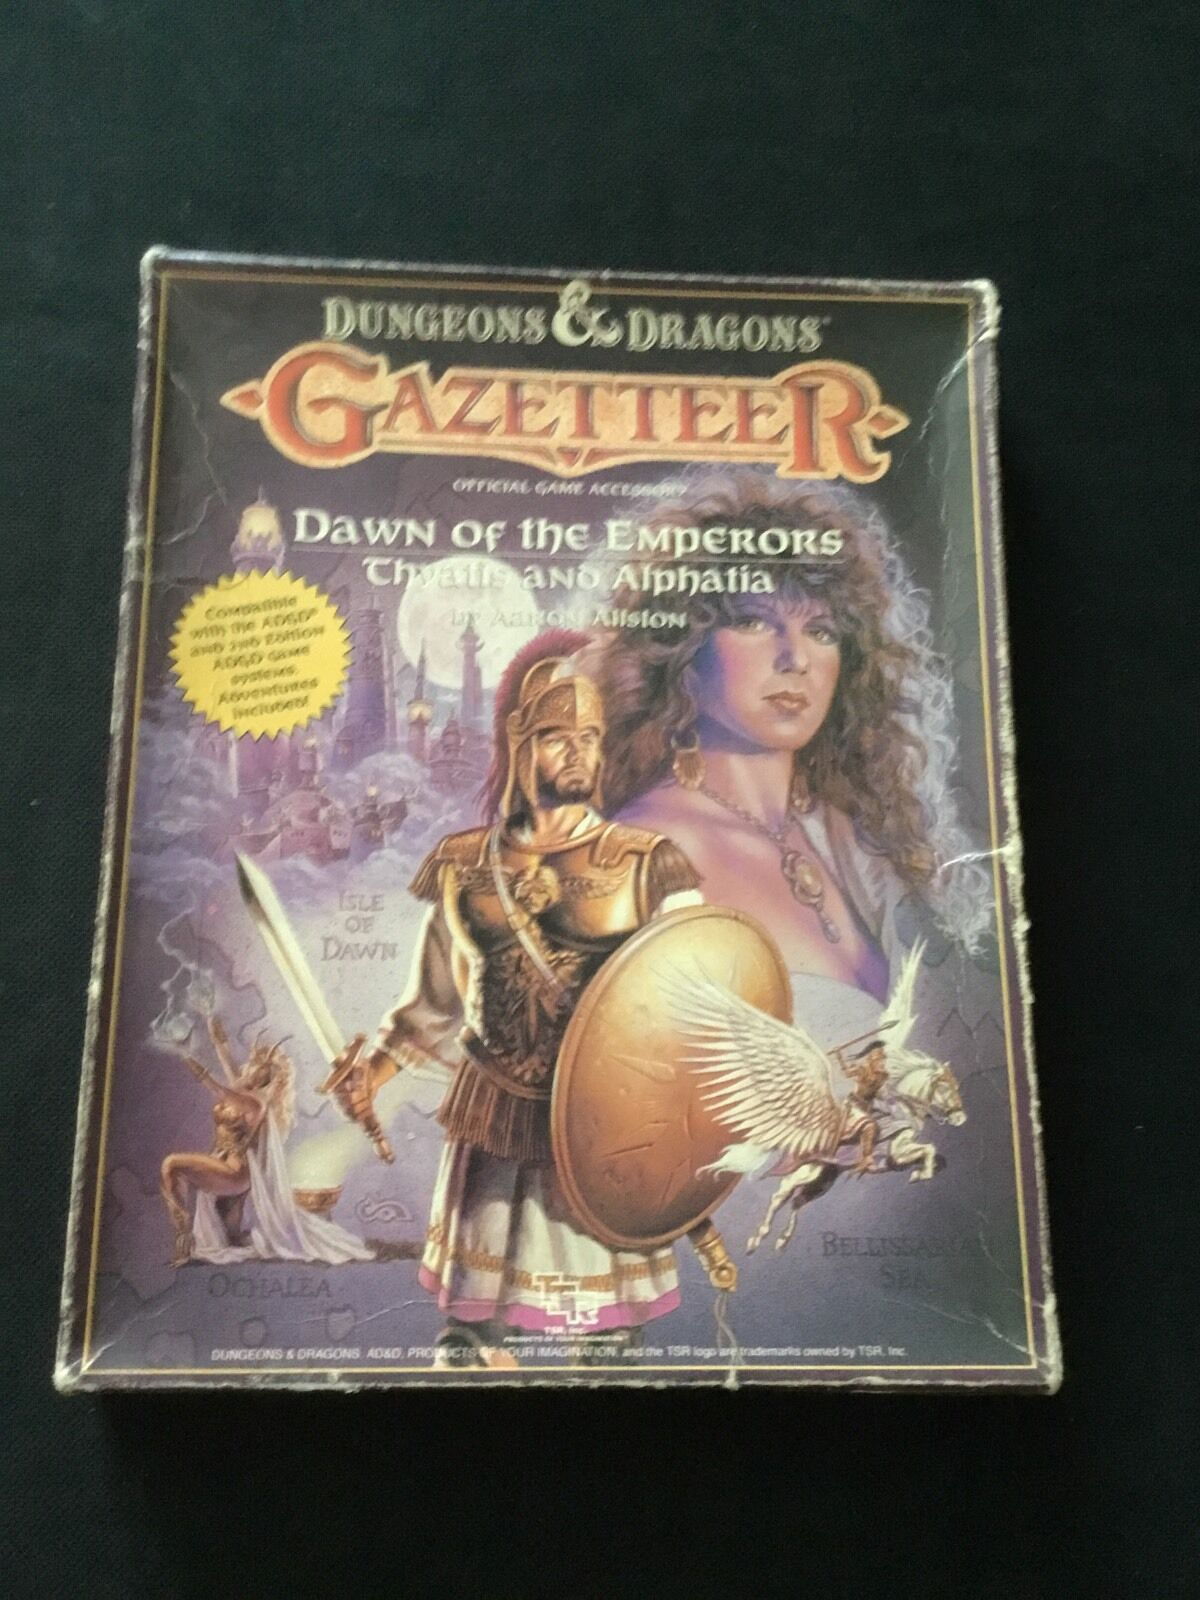 Dungeons & Dragons - Mystara Gazeteer- Dawn Of The Emperors Thyatis And Alphatia